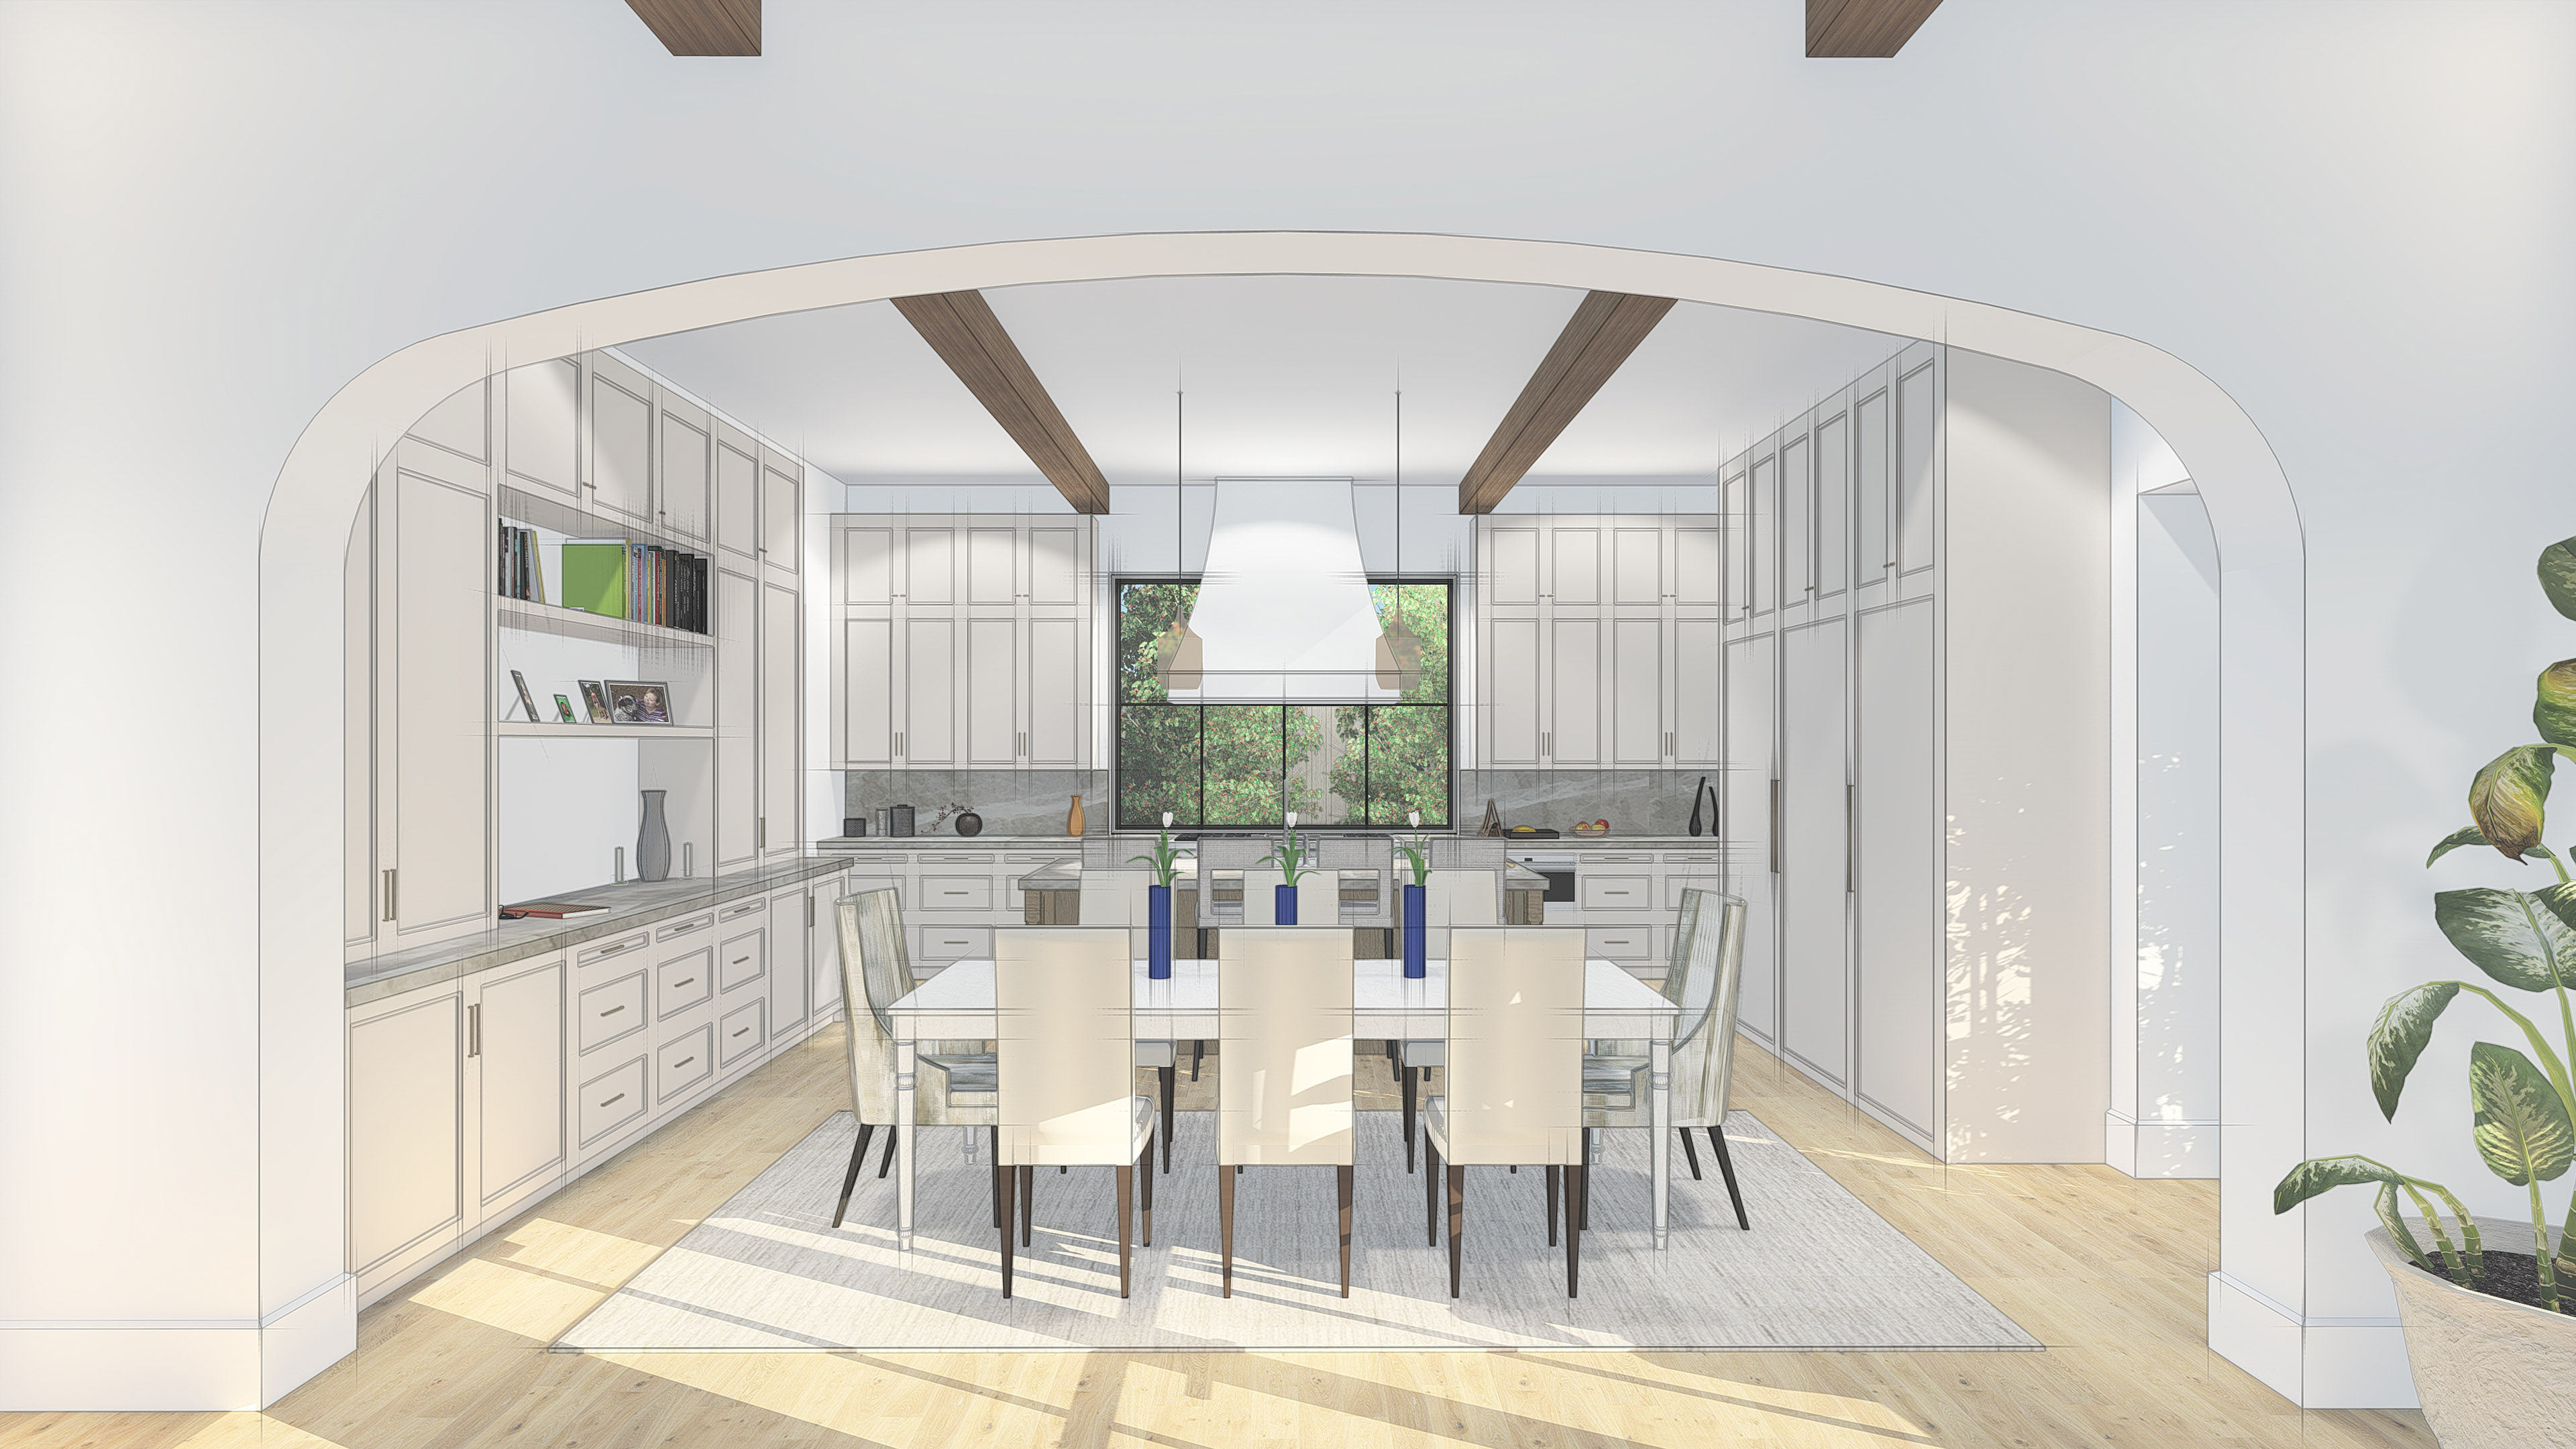 17120_LH Lavendale_Kitchen Render